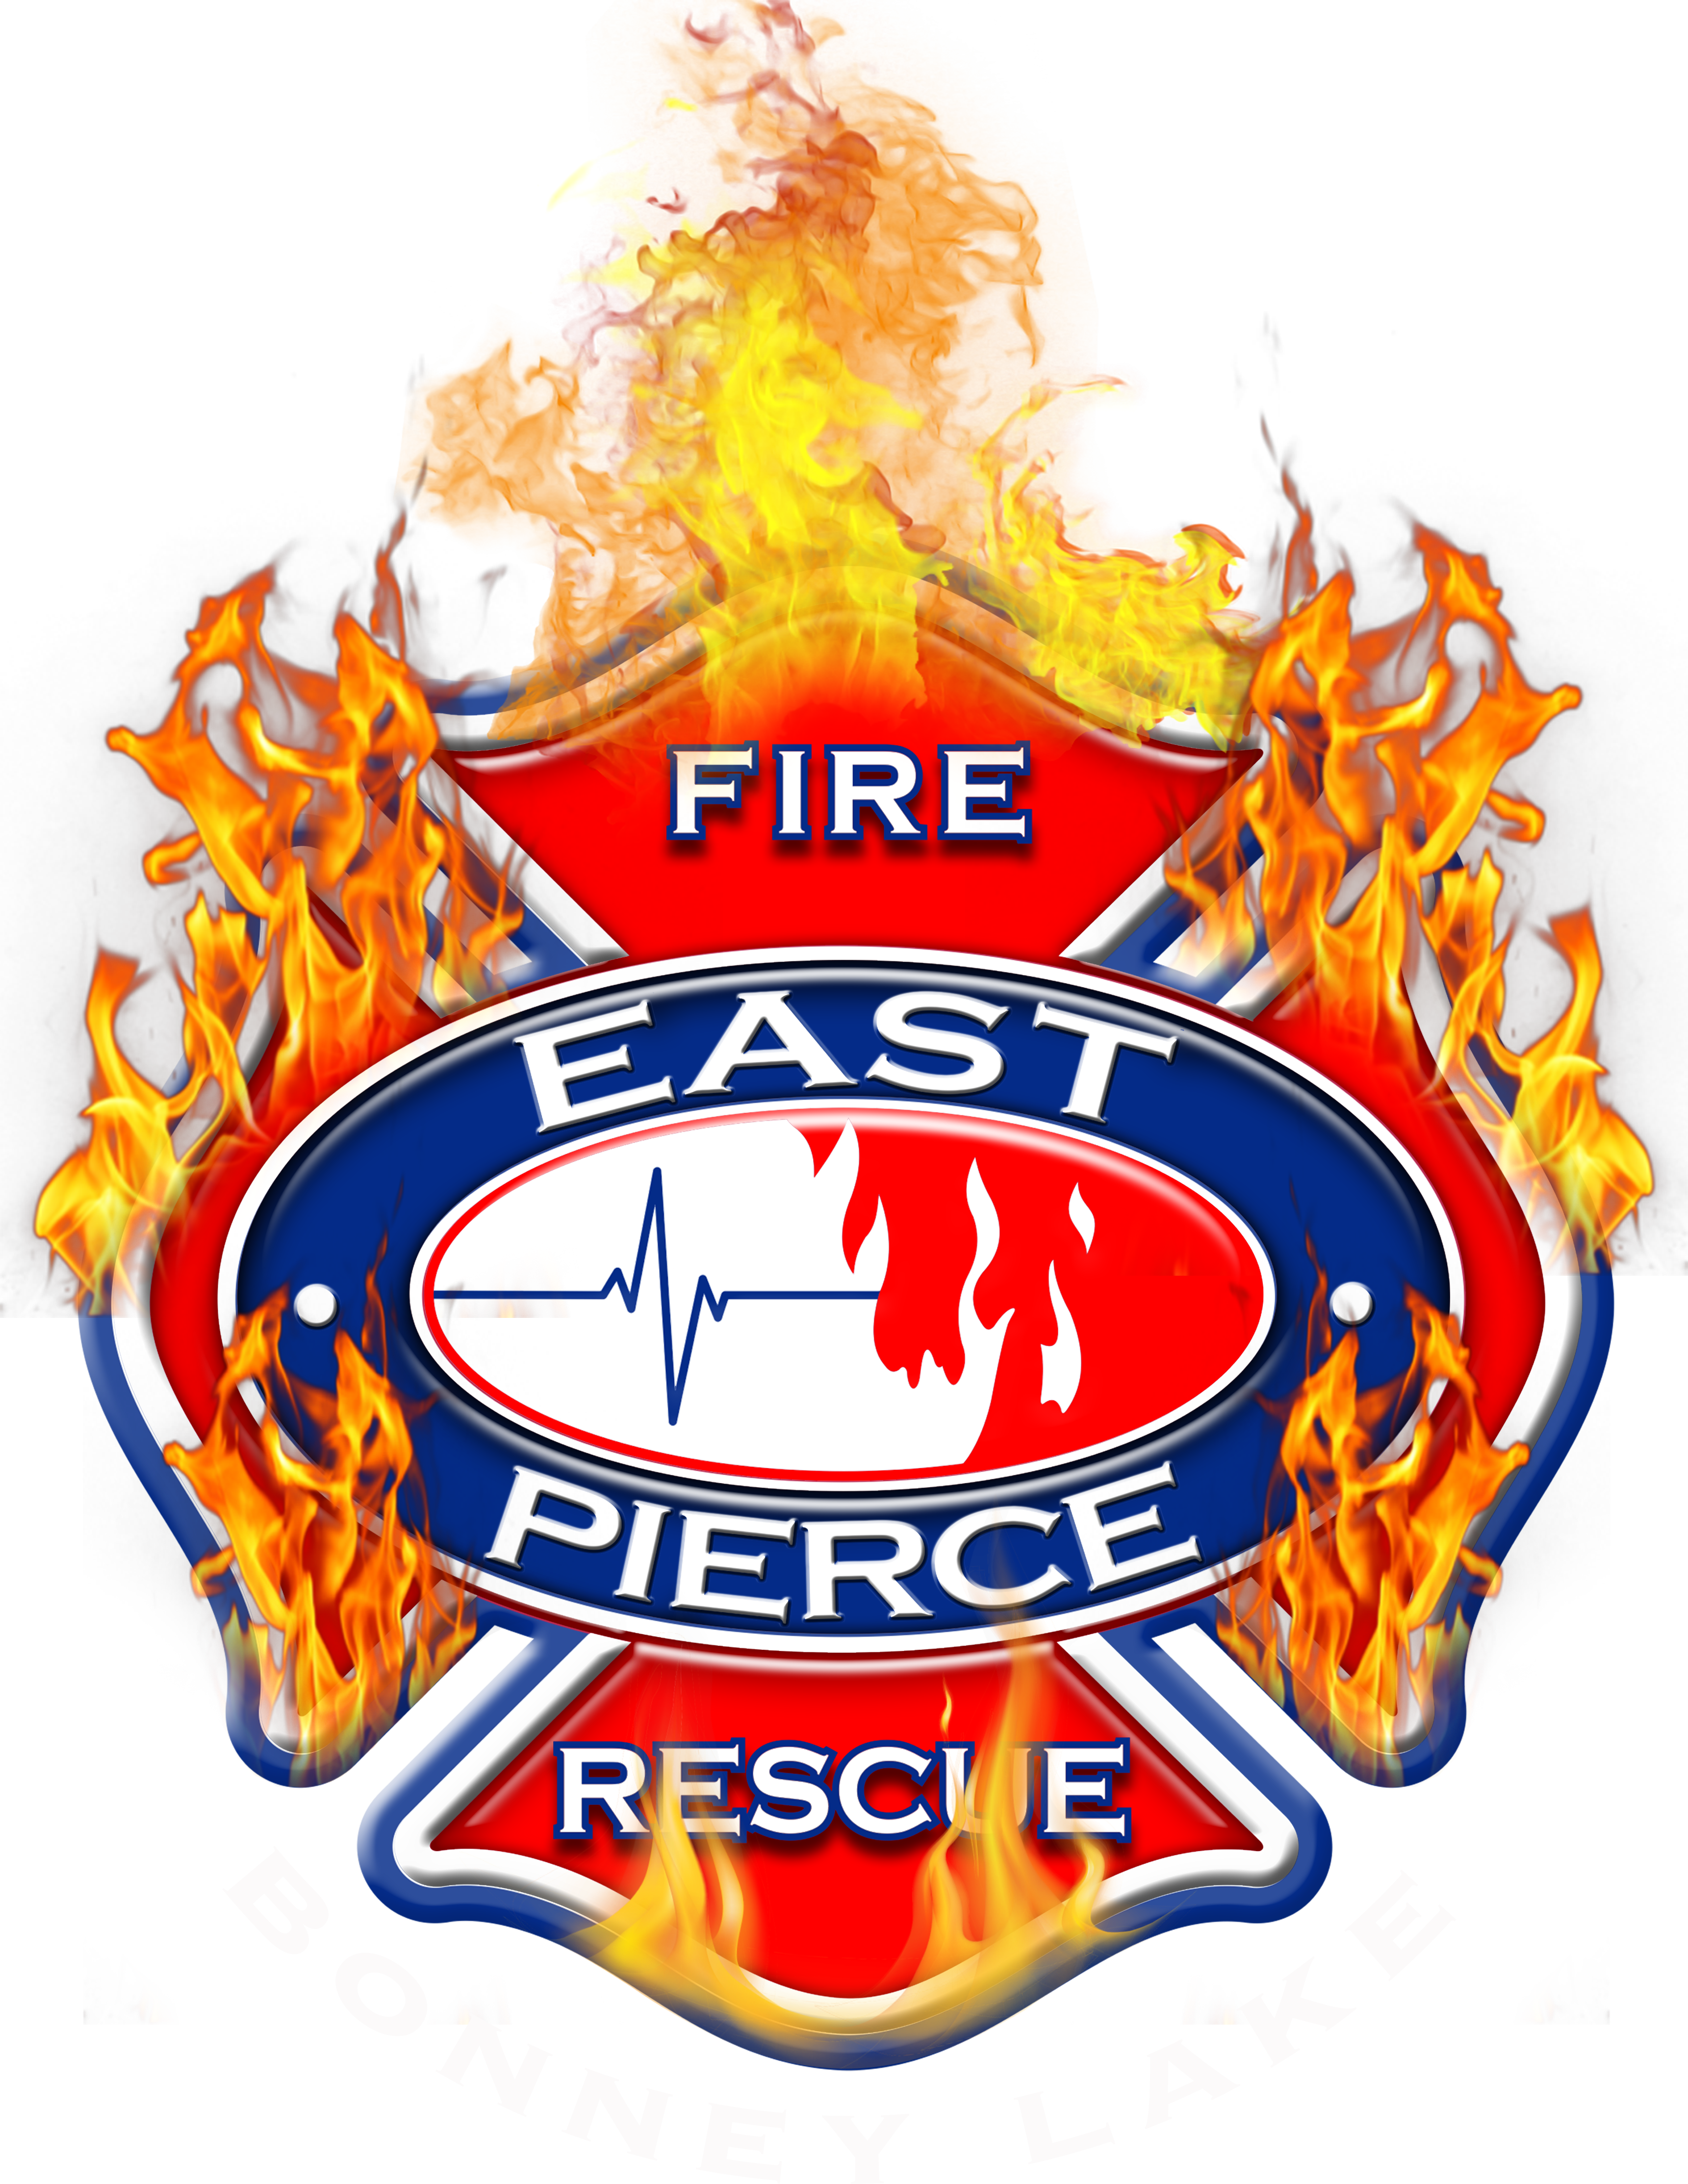 East Pierce Fire and Rescue Logo and Badge with Flames